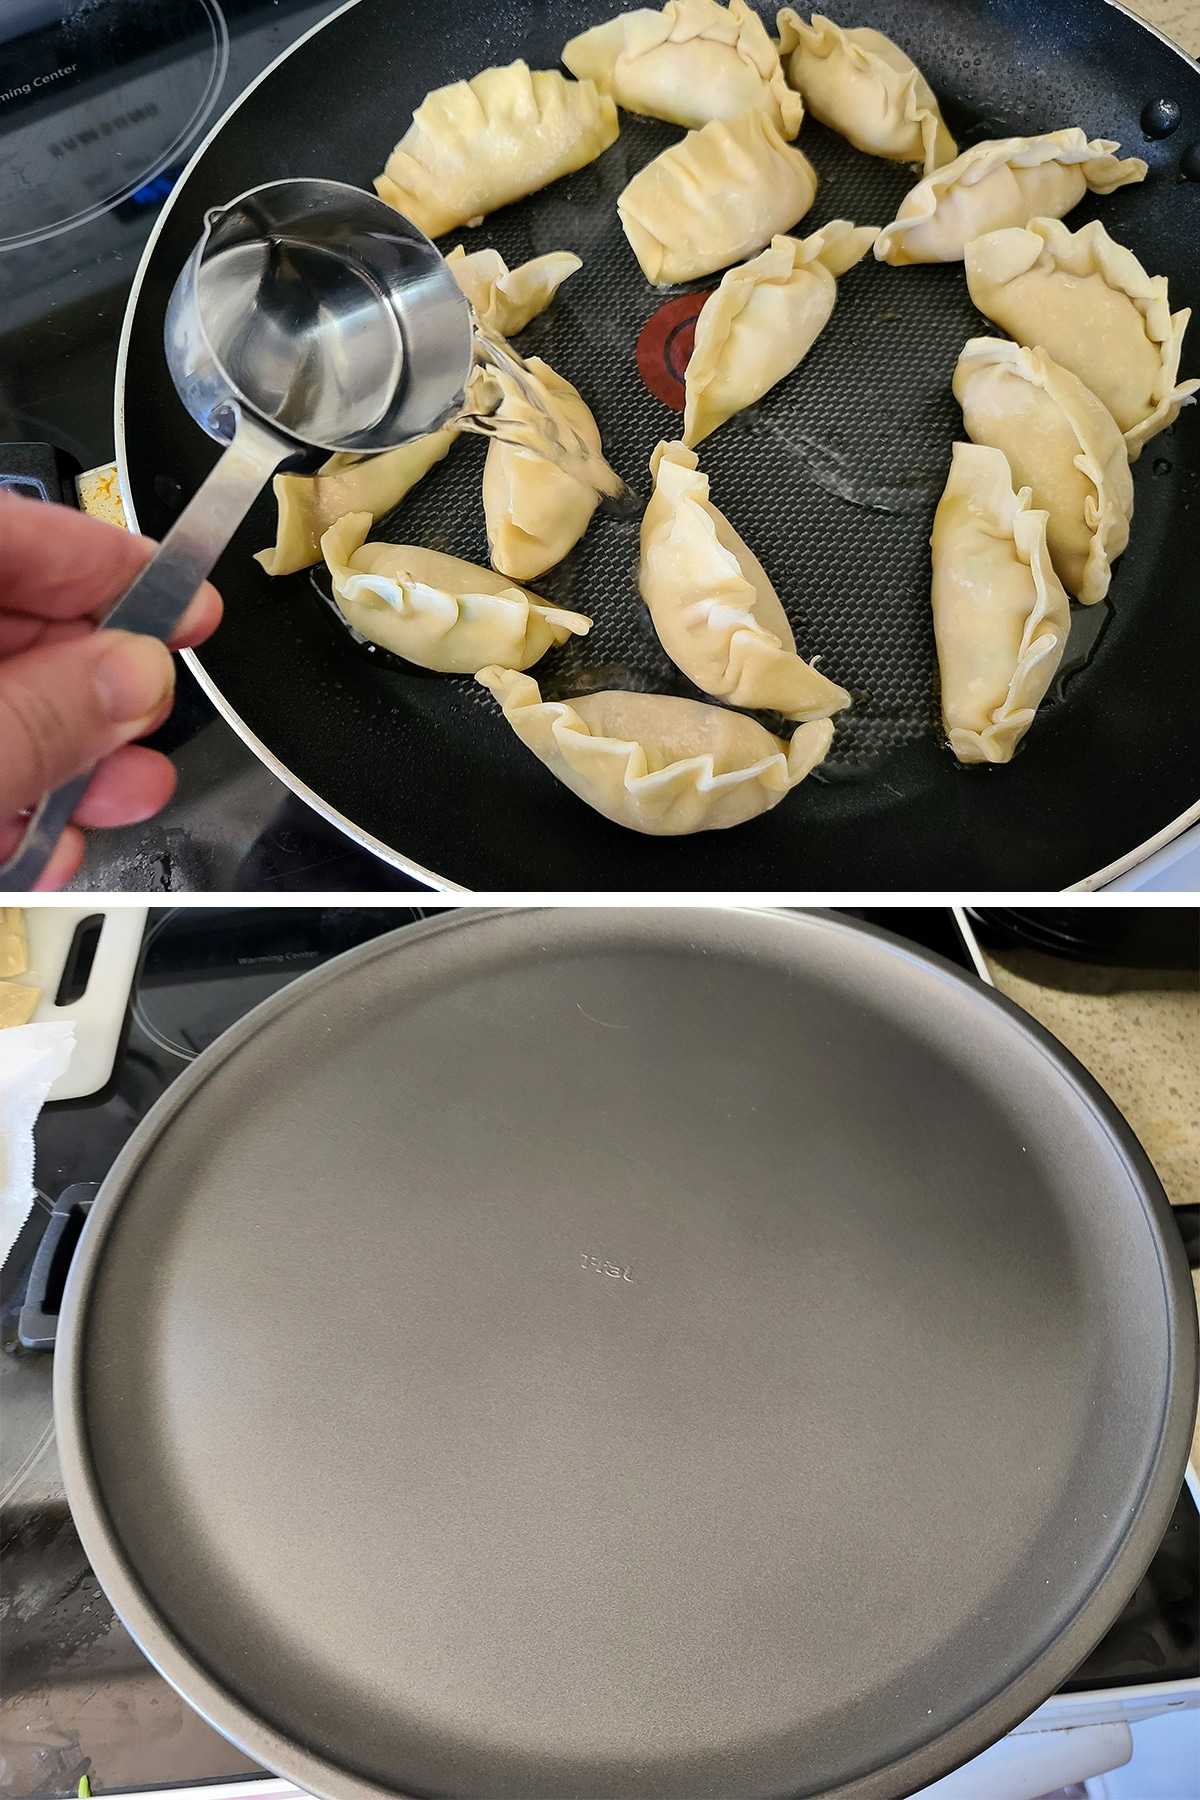 Water is added to the pan, and it is covered.